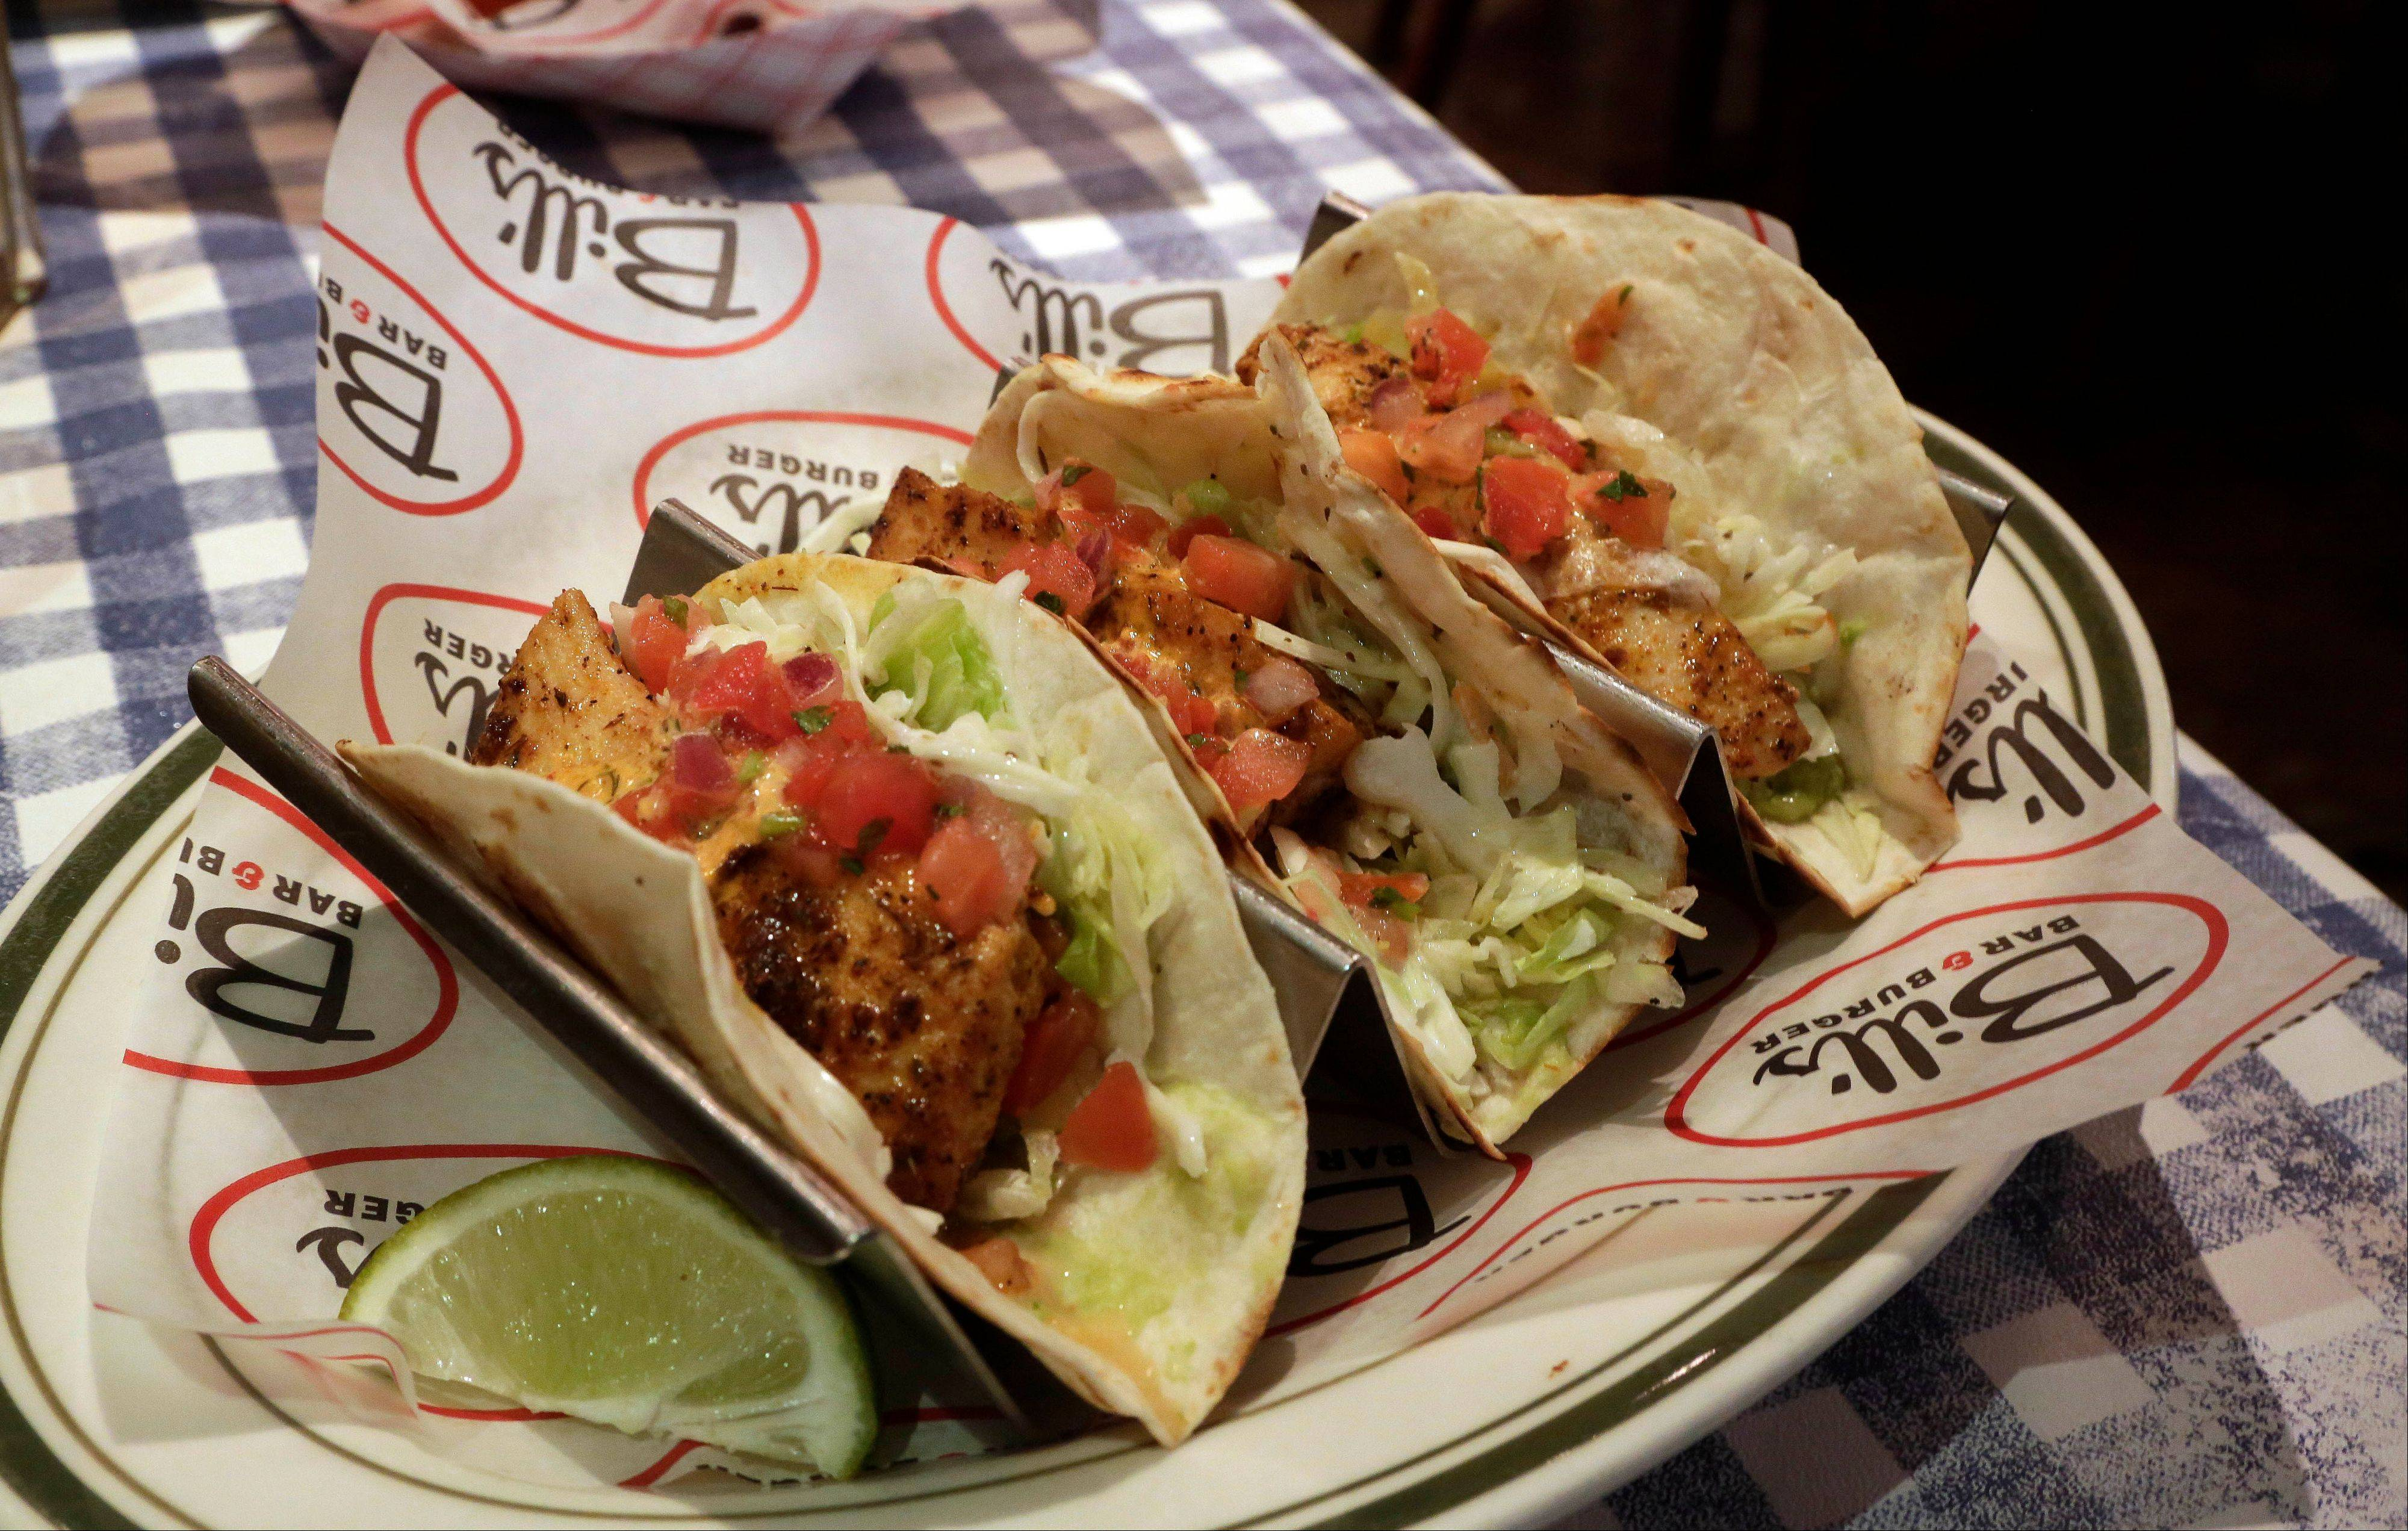 Blackened Mahi fish tacos comes with coleslaw and chipotle aioli at Bill's Bar & Burger in New York's Rockefeller Center.